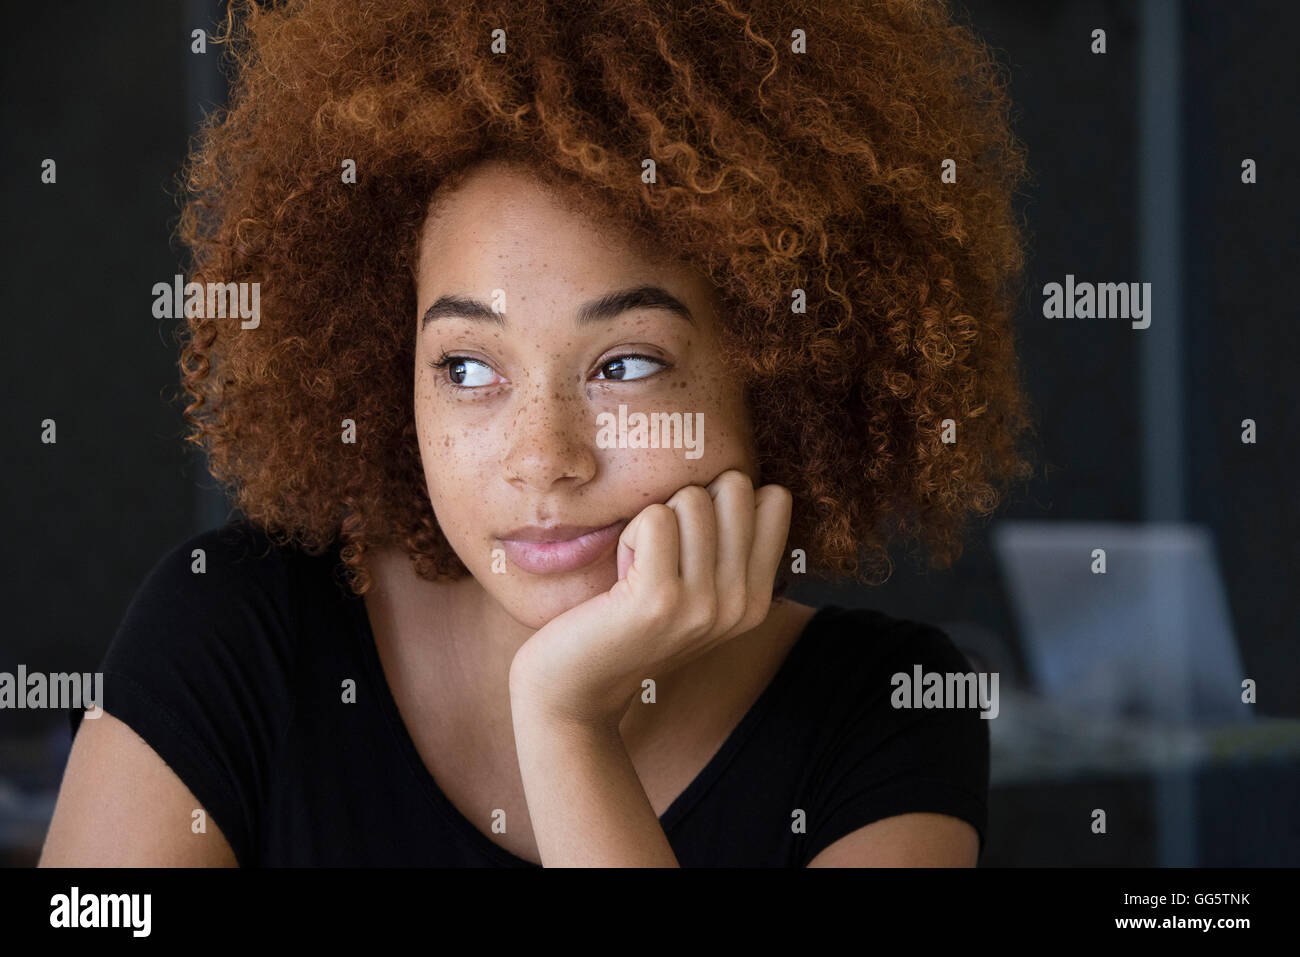 Close-up of a young woman thinking Stock Photo